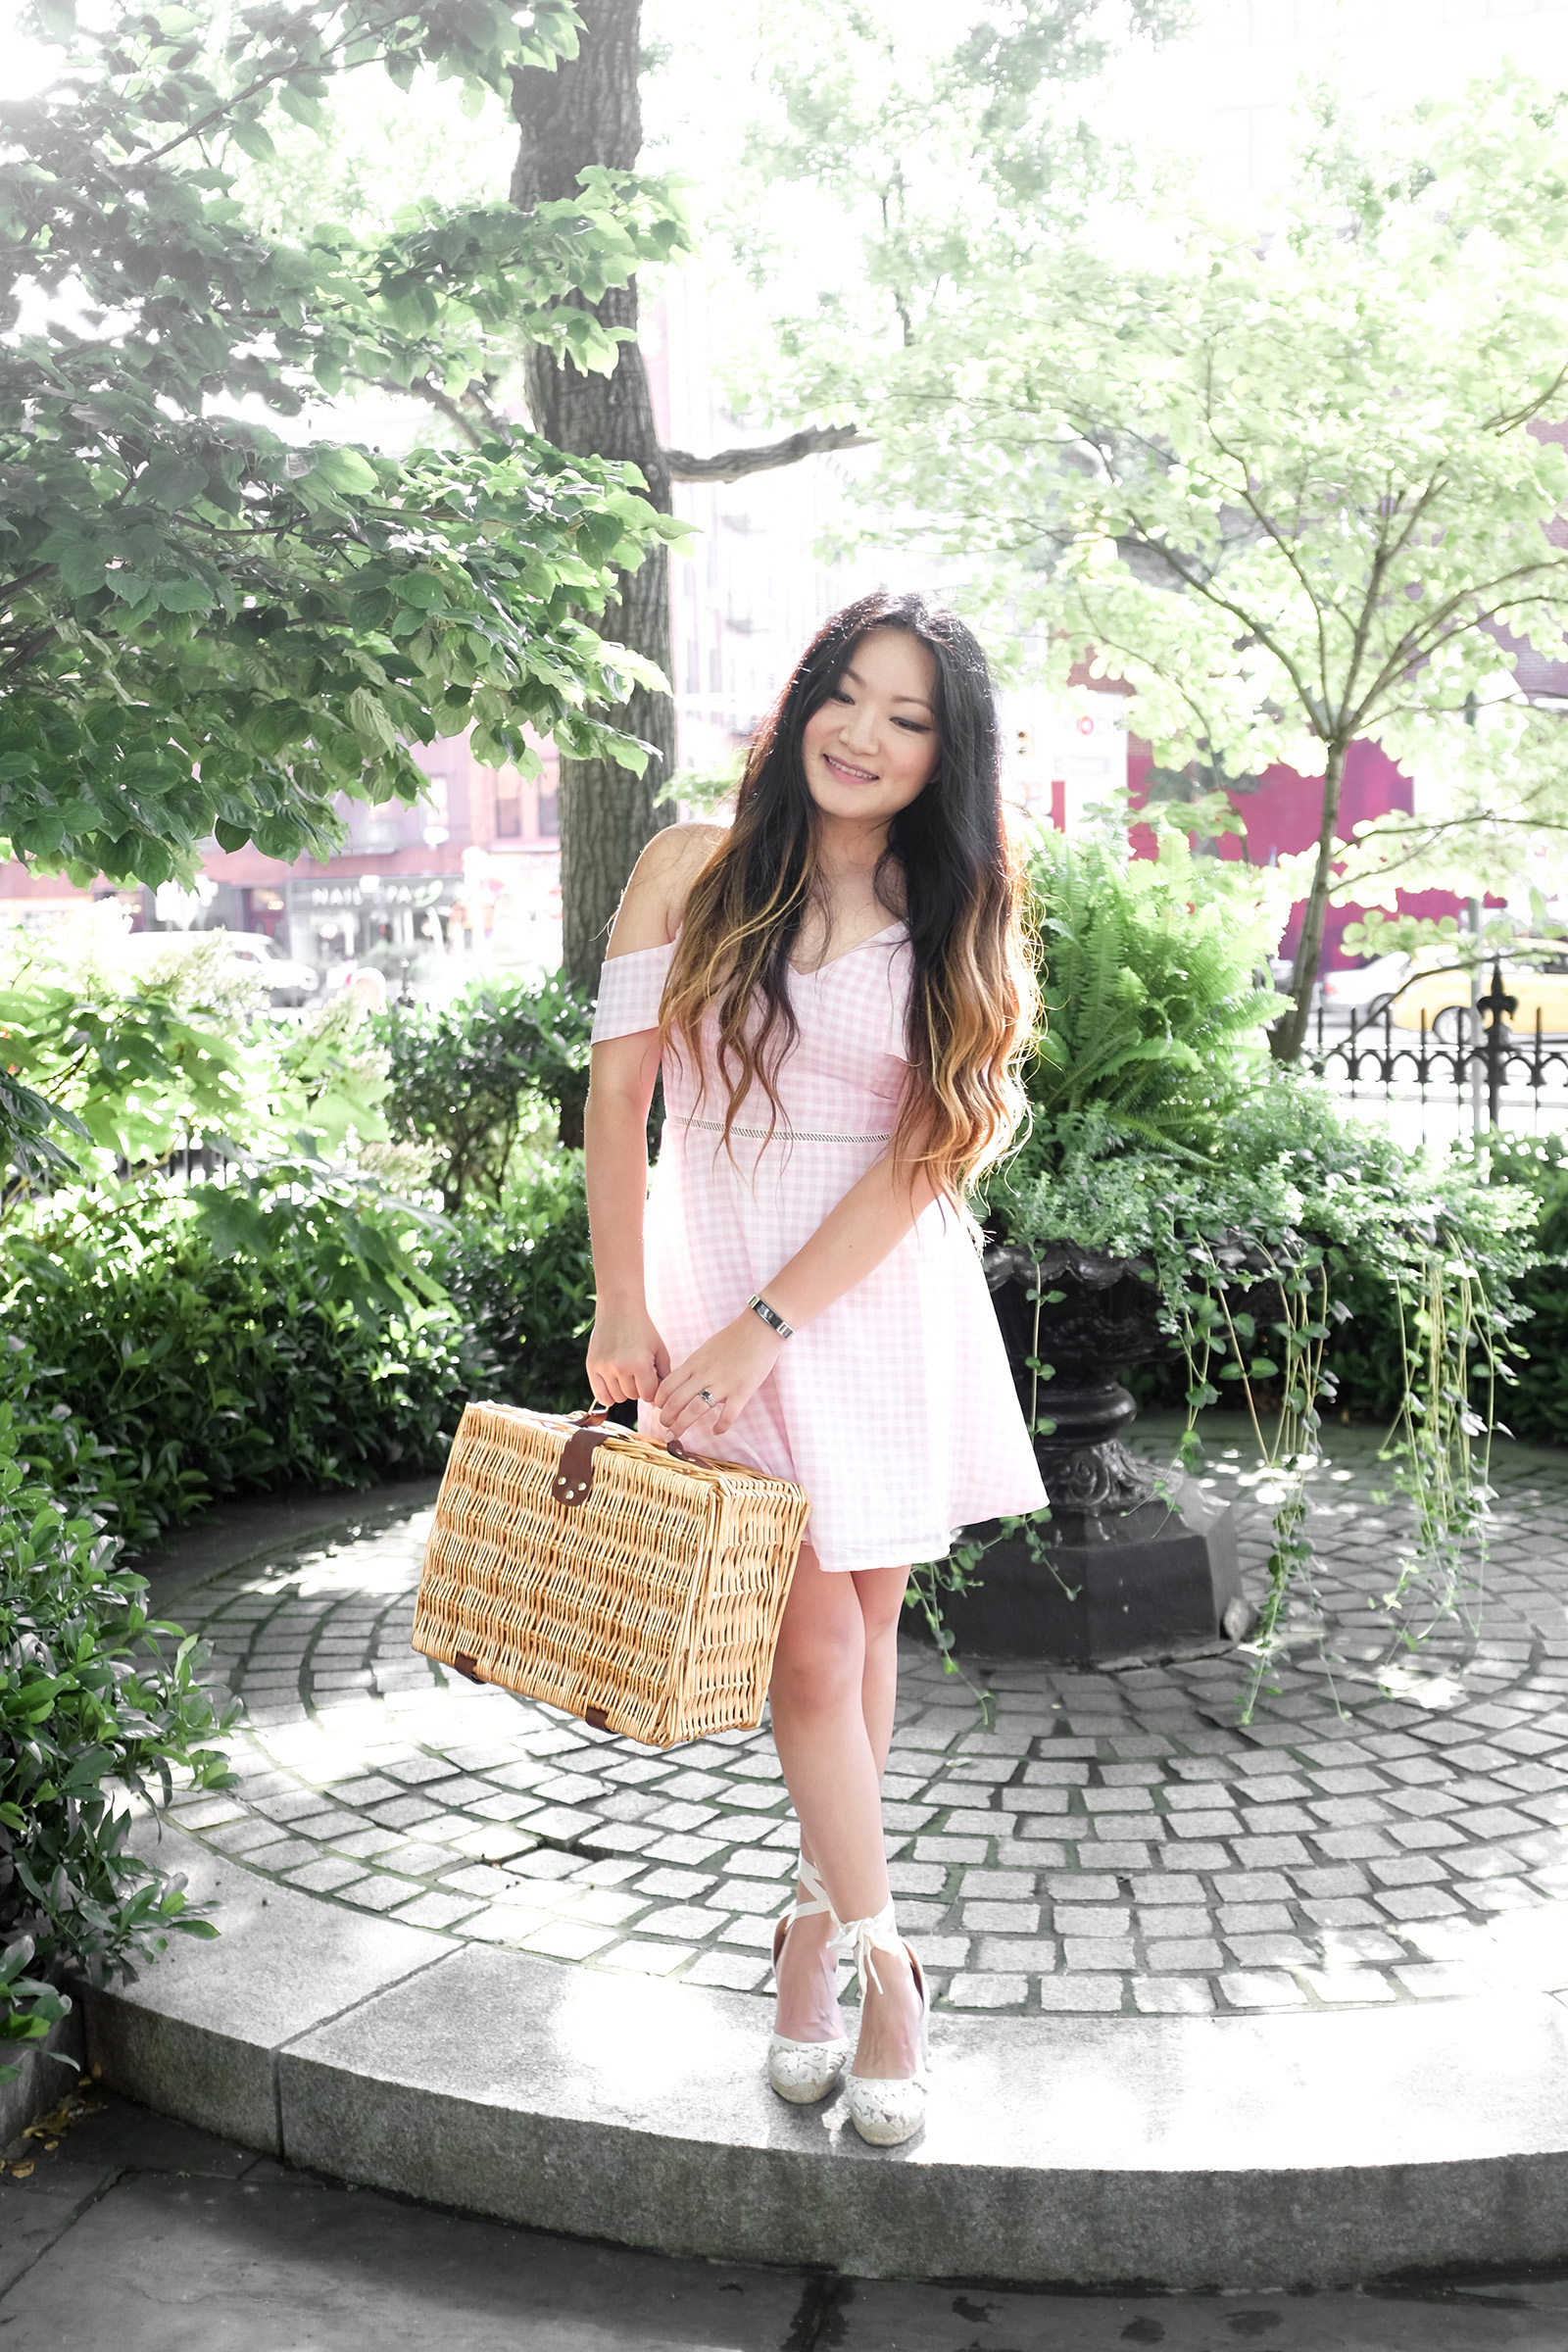 Pink Gingham Dress Picnic Basket